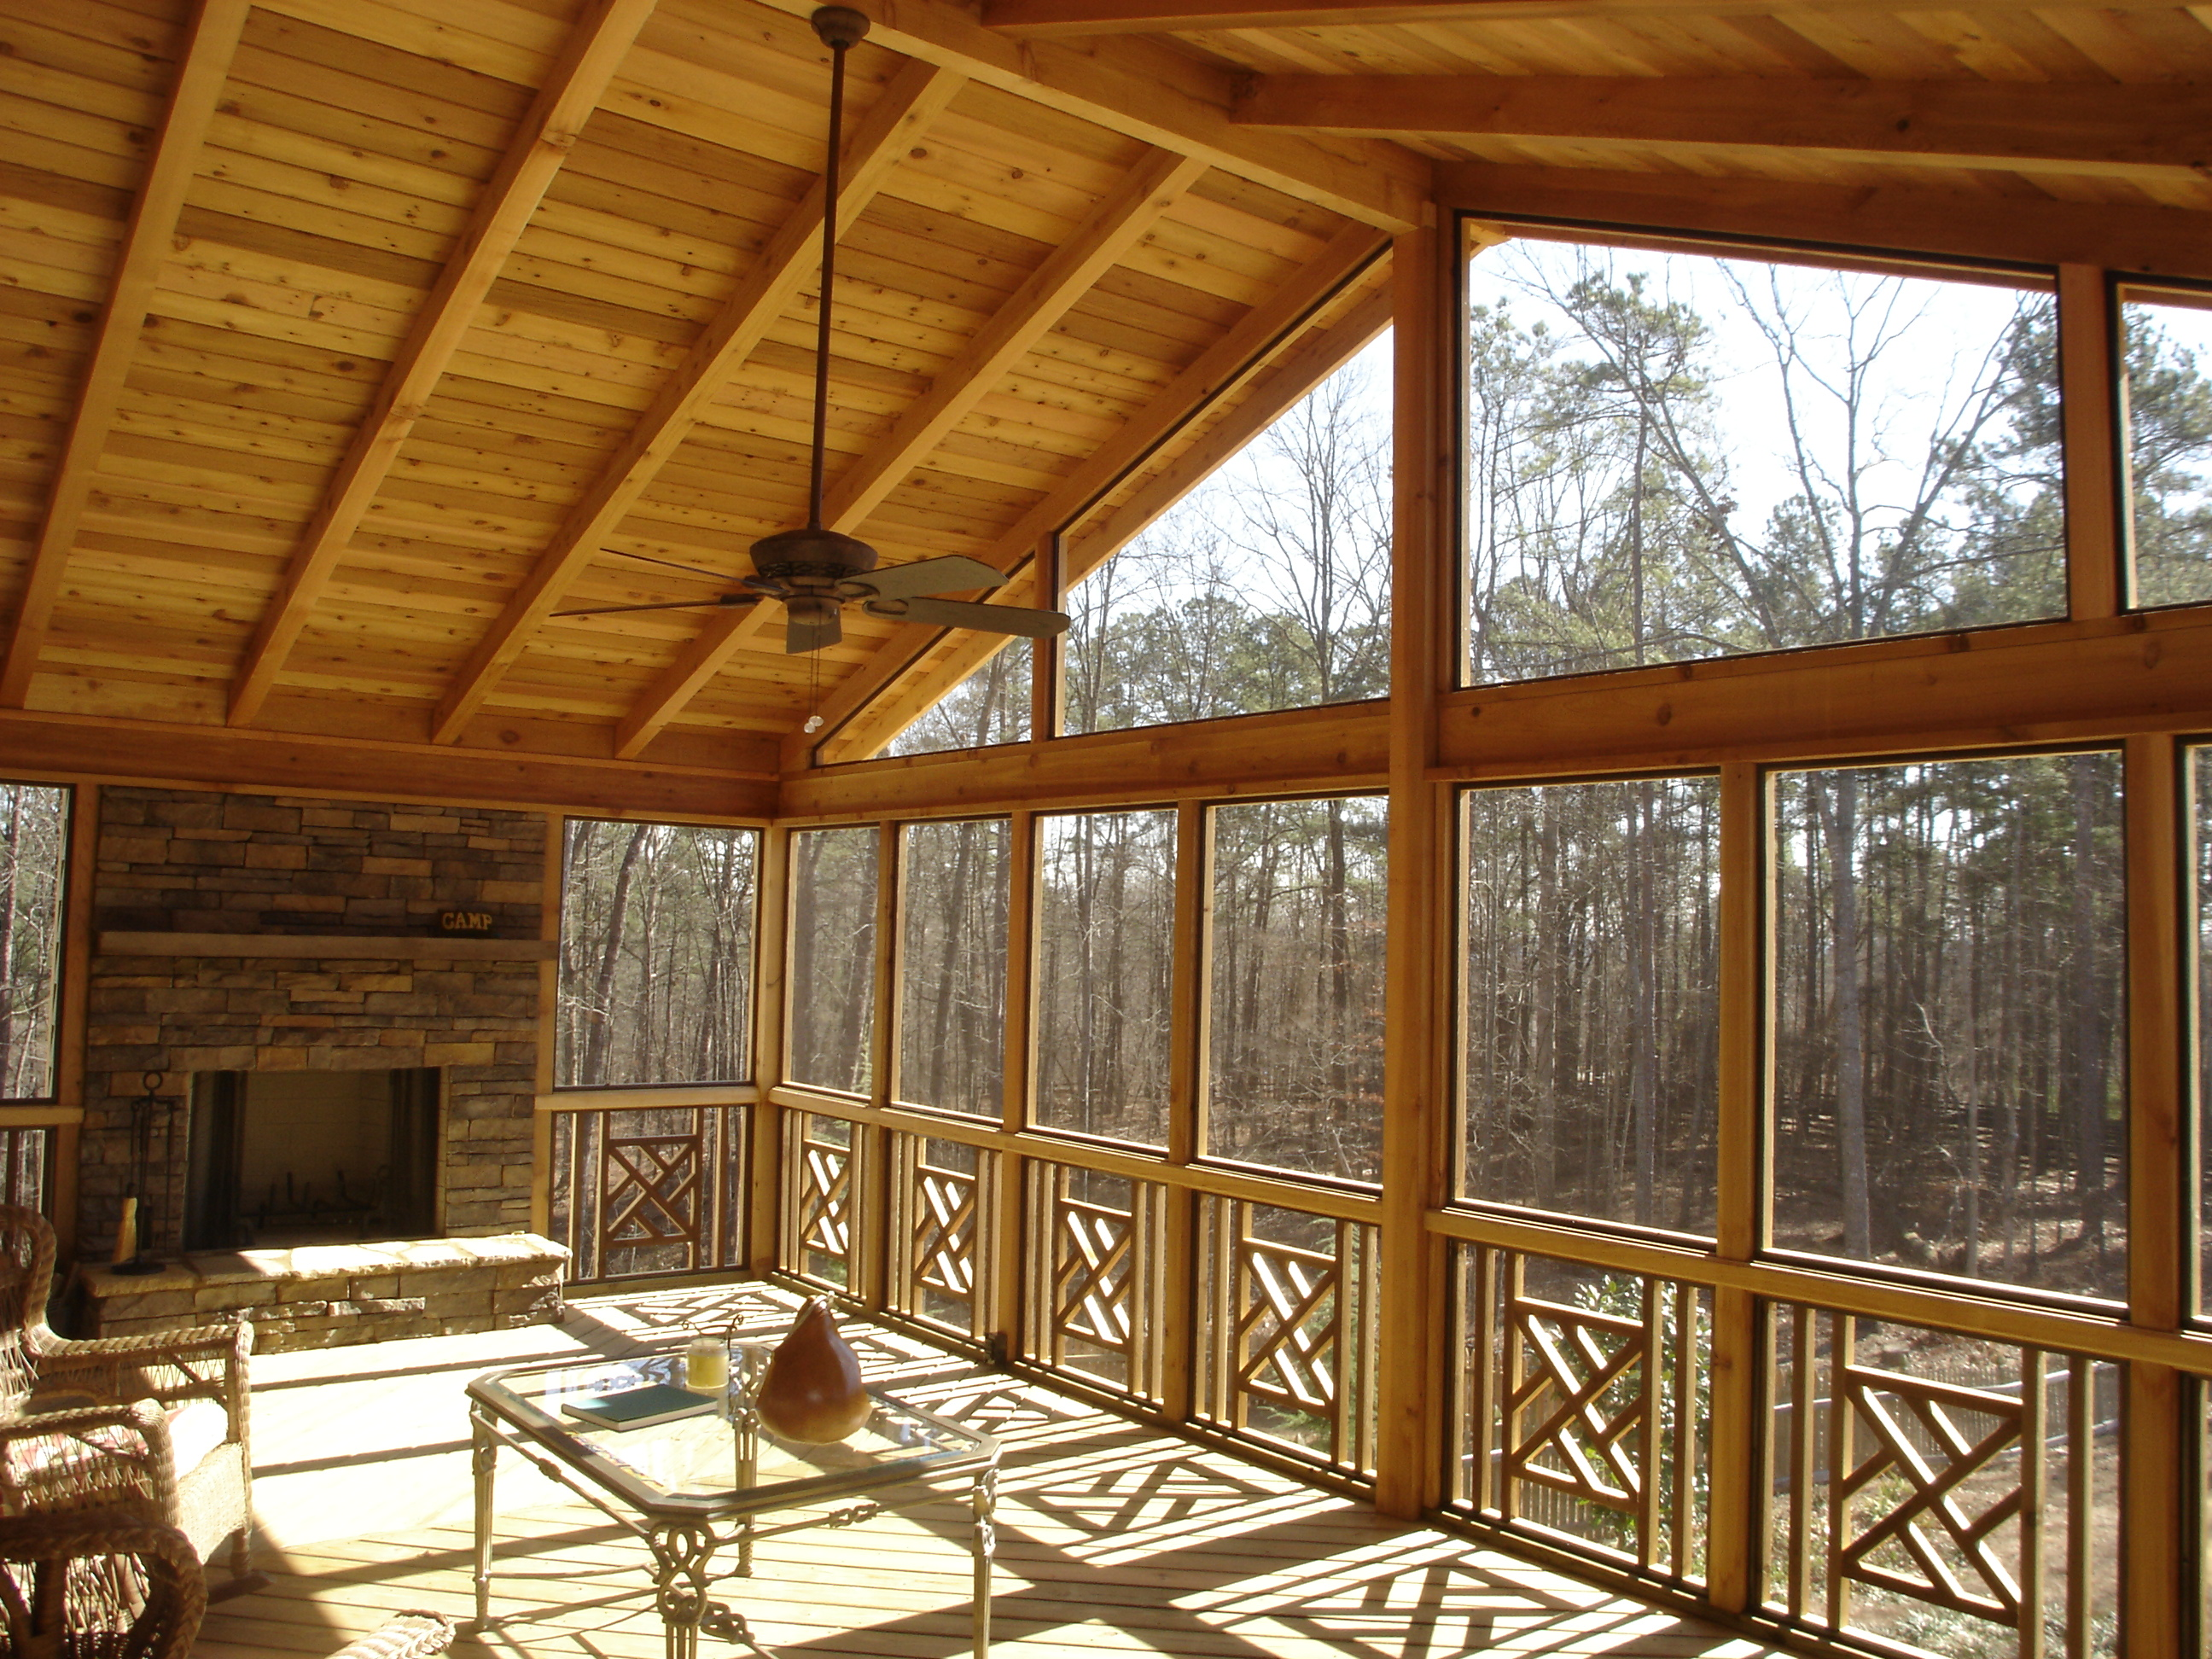 Top 10 Reasons for Building a Screen Porch | Columbus Decks, Porches ...